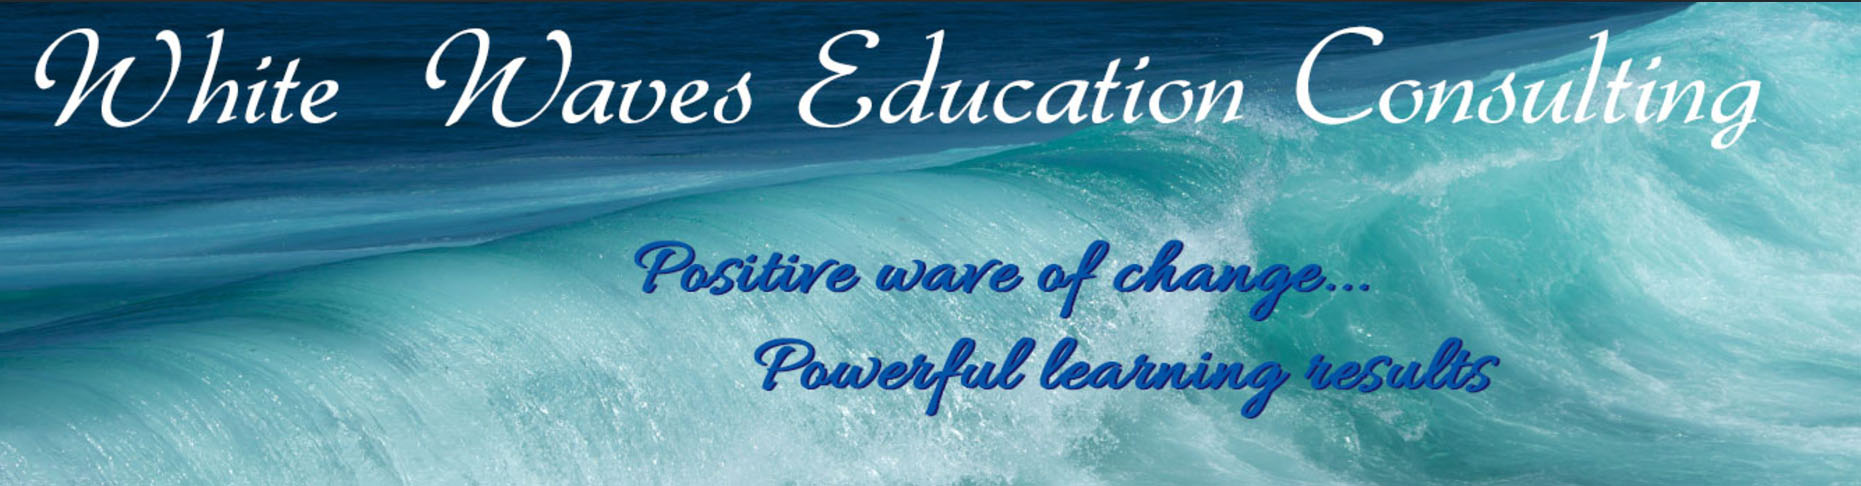 White Waves Education Consulting